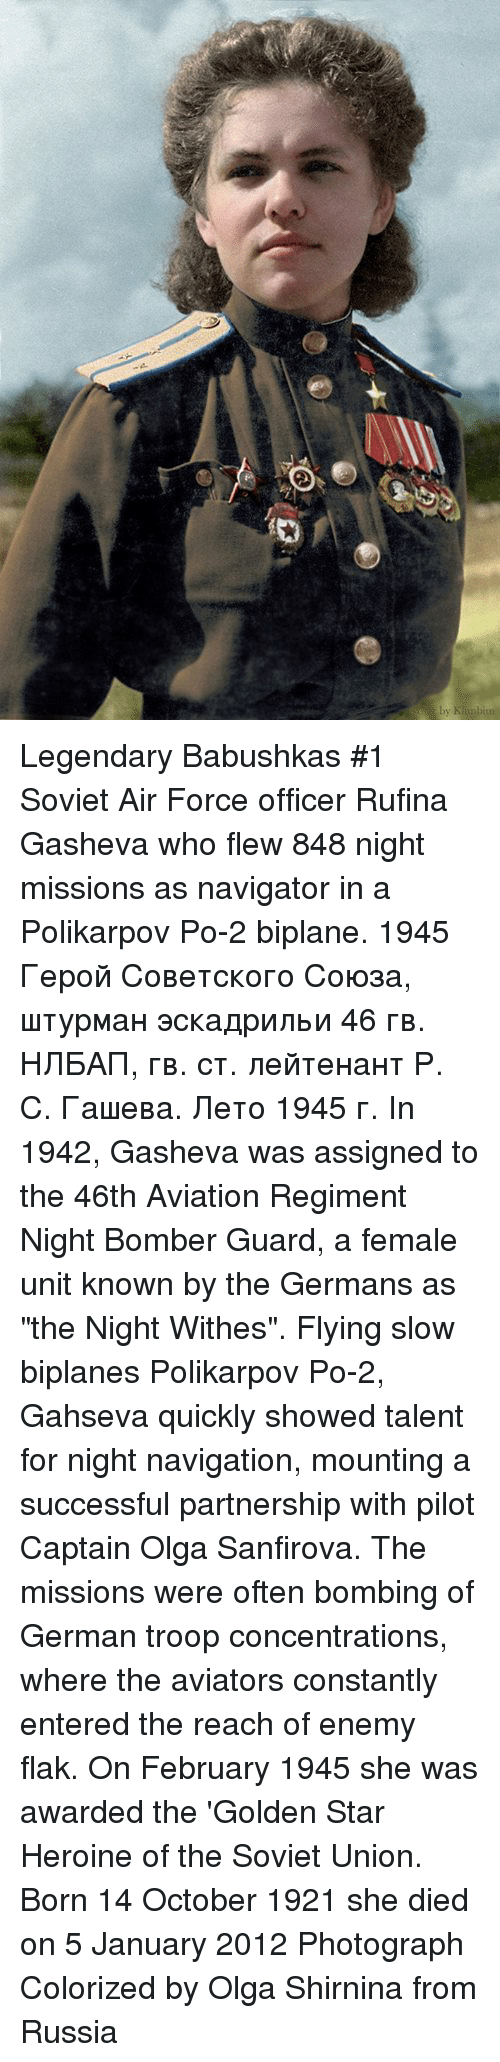 "Heroin, Air Force, and Navigation: Legendary Babushkas #1   Soviet Air Force officer Rufina Gasheva who flew 848 night missions as navigator in a Polikarpov Po-2  biplane. 1945 Герой Советского Союза, штурман эскадрильи 46 гв. НЛБАП, гв. ст. лейтенант Р. С. Гашева. Лето 1945 г.  In 1942, Gasheva was assigned to the 46th Aviation Regiment Night Bomber Guard, a female unit known by the Germans as ""the Night Withes"". Flying slow biplanes Polikarpov Po-2, Gahseva quickly showed talent for night navigation, mounting a successful partnership with pilot Captain Olga Sanfirova. The missions were often bombing of German troop concentrations, where the aviators constantly entered the reach of enemy flak.  On February 1945 she was awarded the 'Golden Star Heroine of the Soviet Union.  Born 14 October 1921 she died on 5 January 2012  Photograph Colorized by Olga Shirnina from Russia"